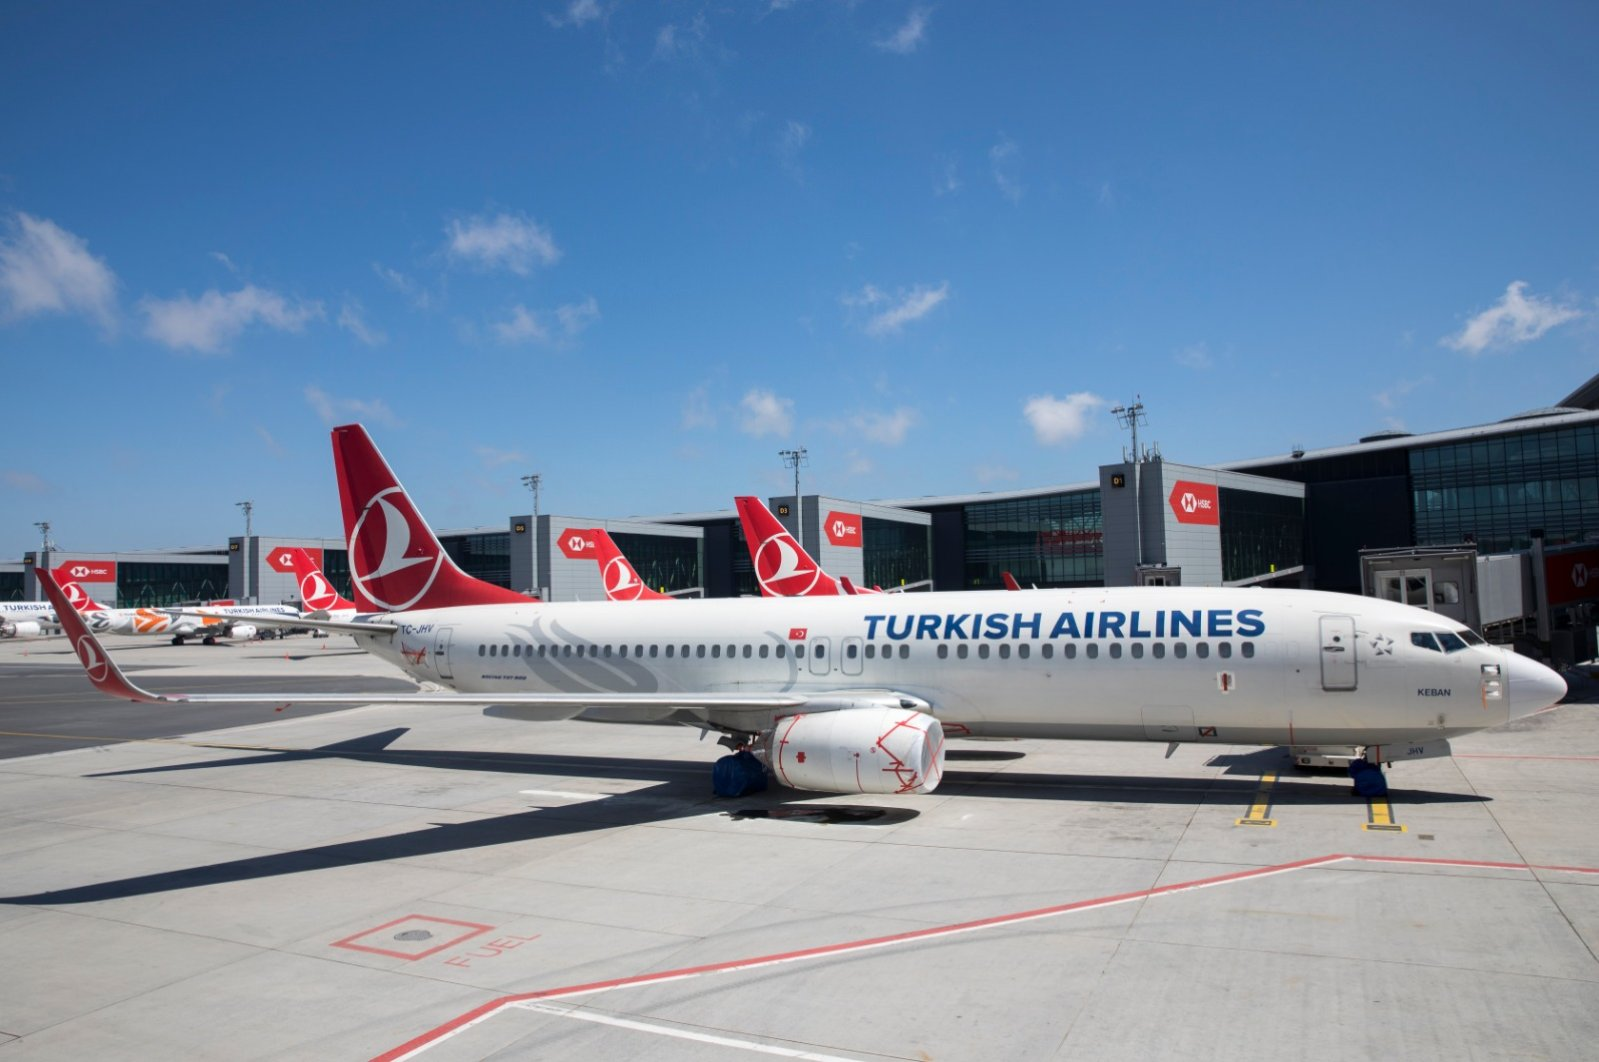 Turkish Airlines planes sit on the tarmac at Istanbul Airport during the coronavirus outbreak, Istanbul, May 24, 2020. (AA Photo)